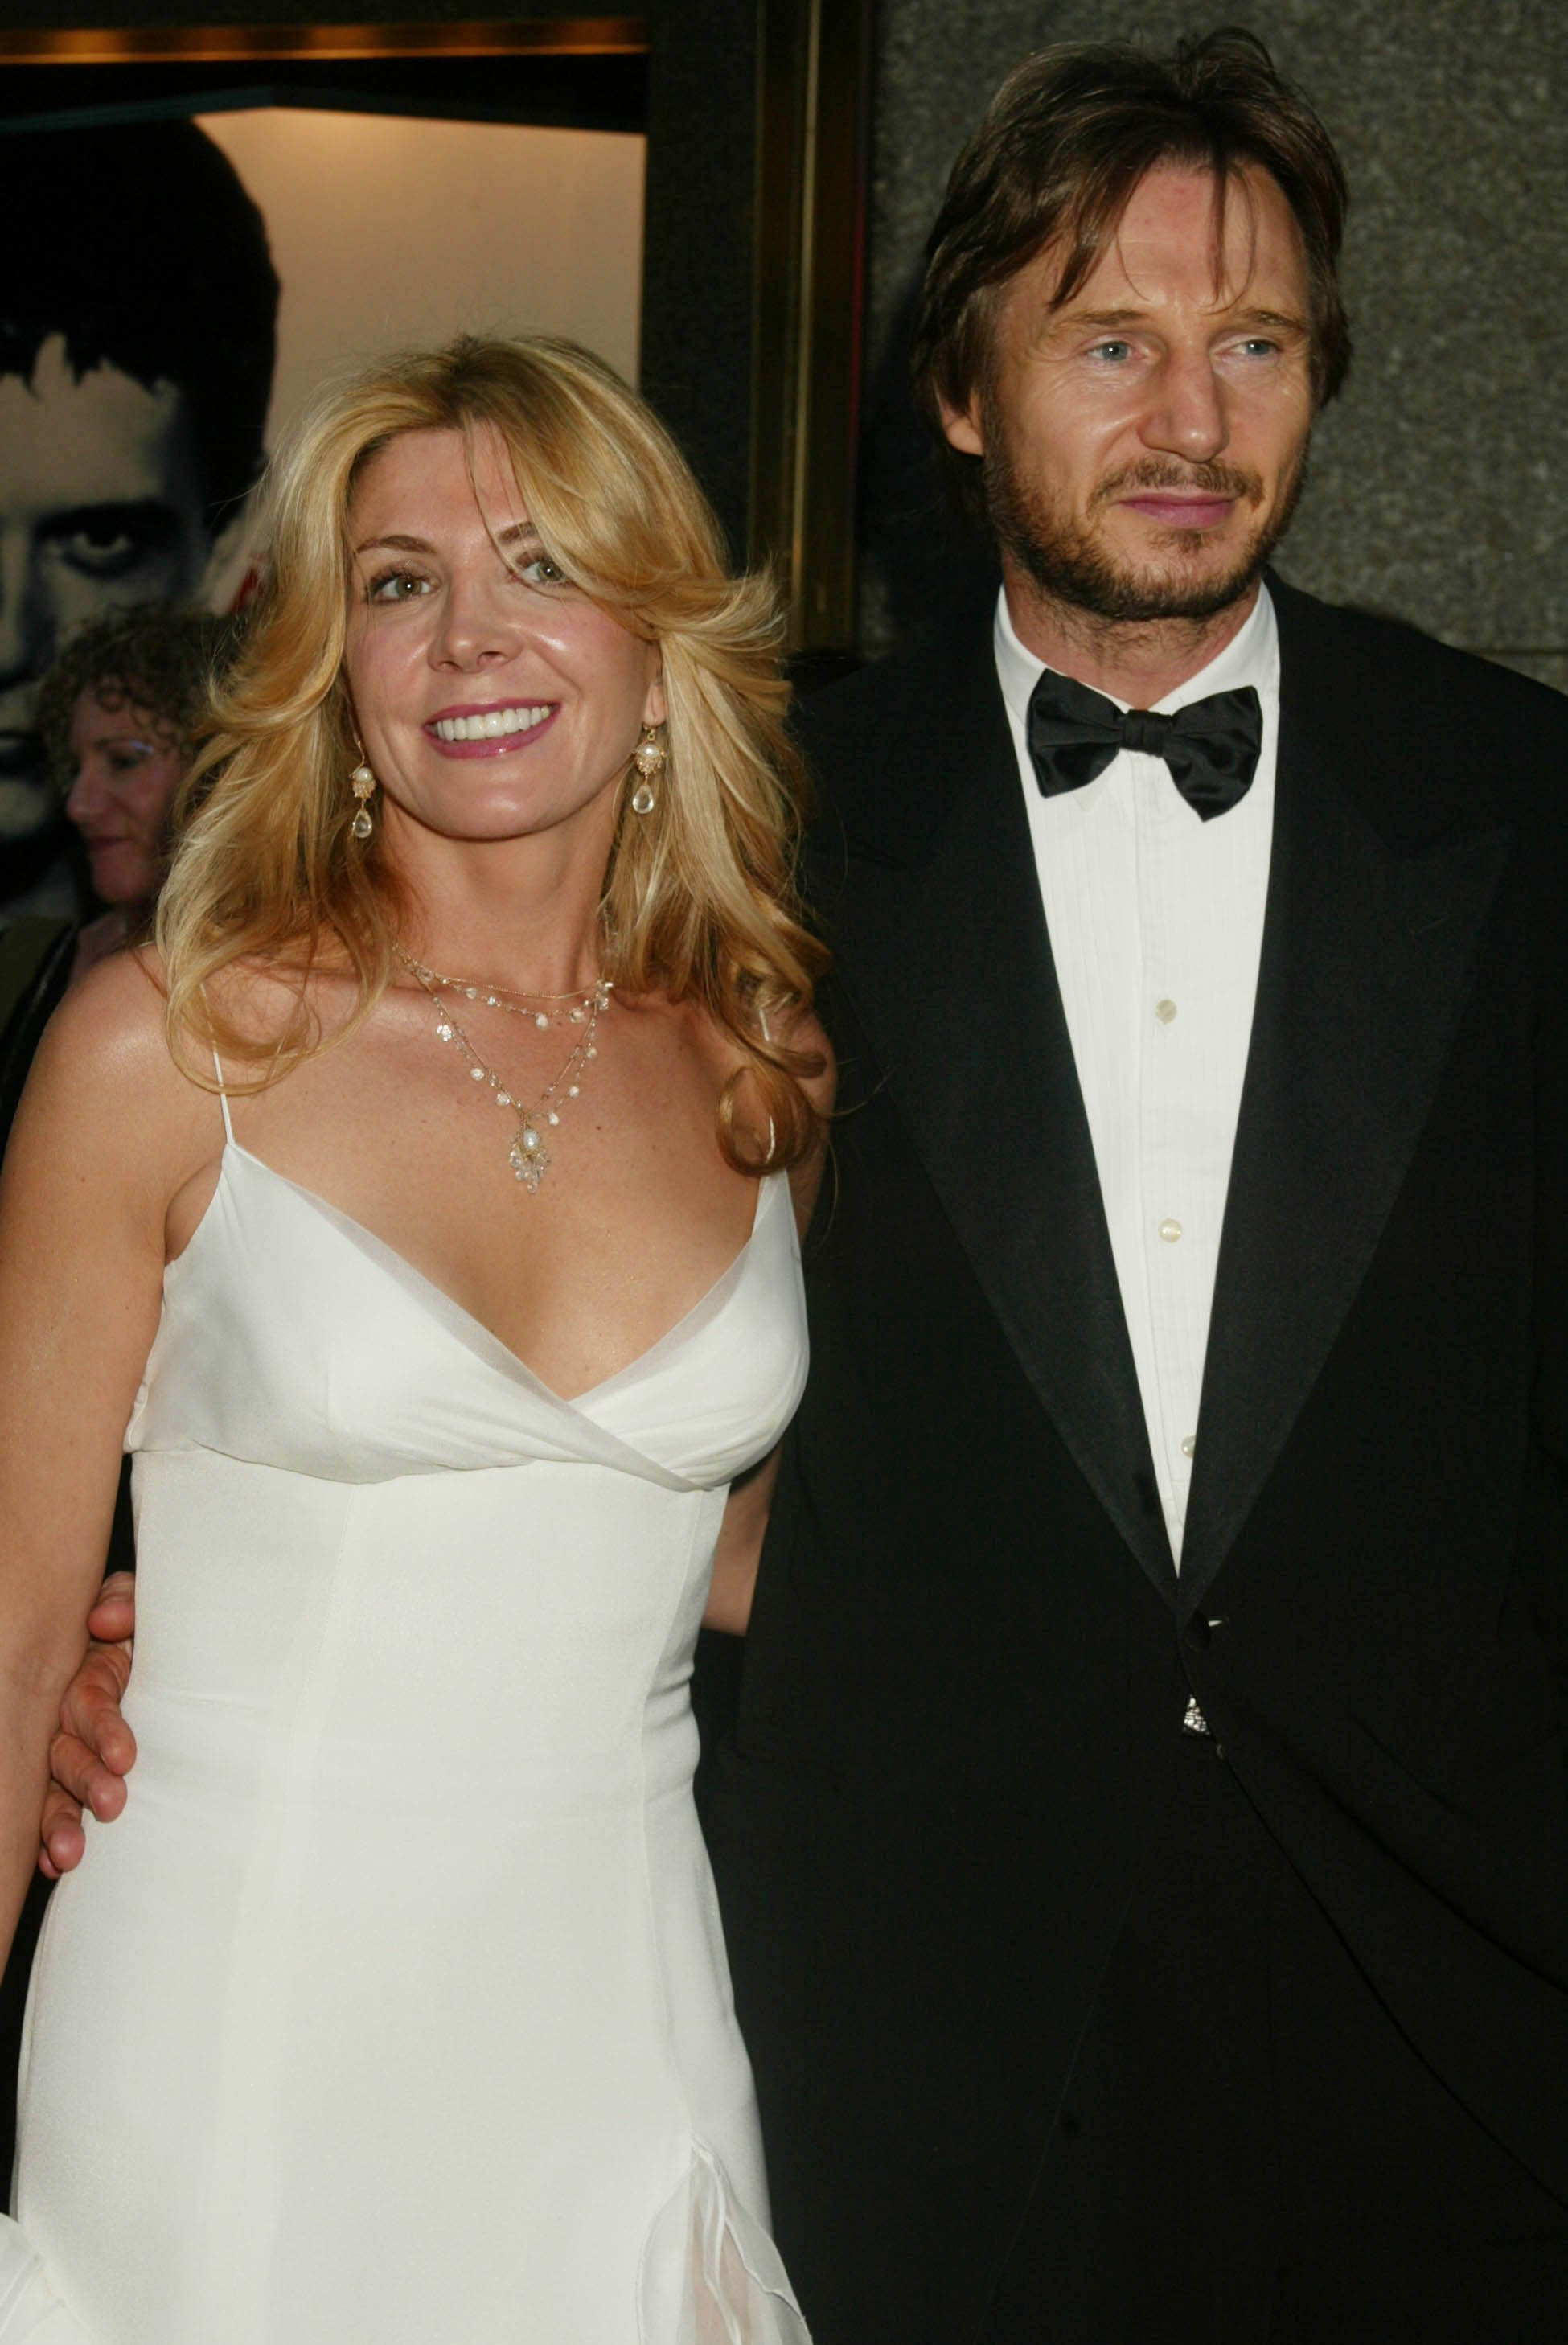 Natasha Richardson and Liam Neeson arrive for the 56th Annual Tony Awards in 2002. | Source: Getty Images